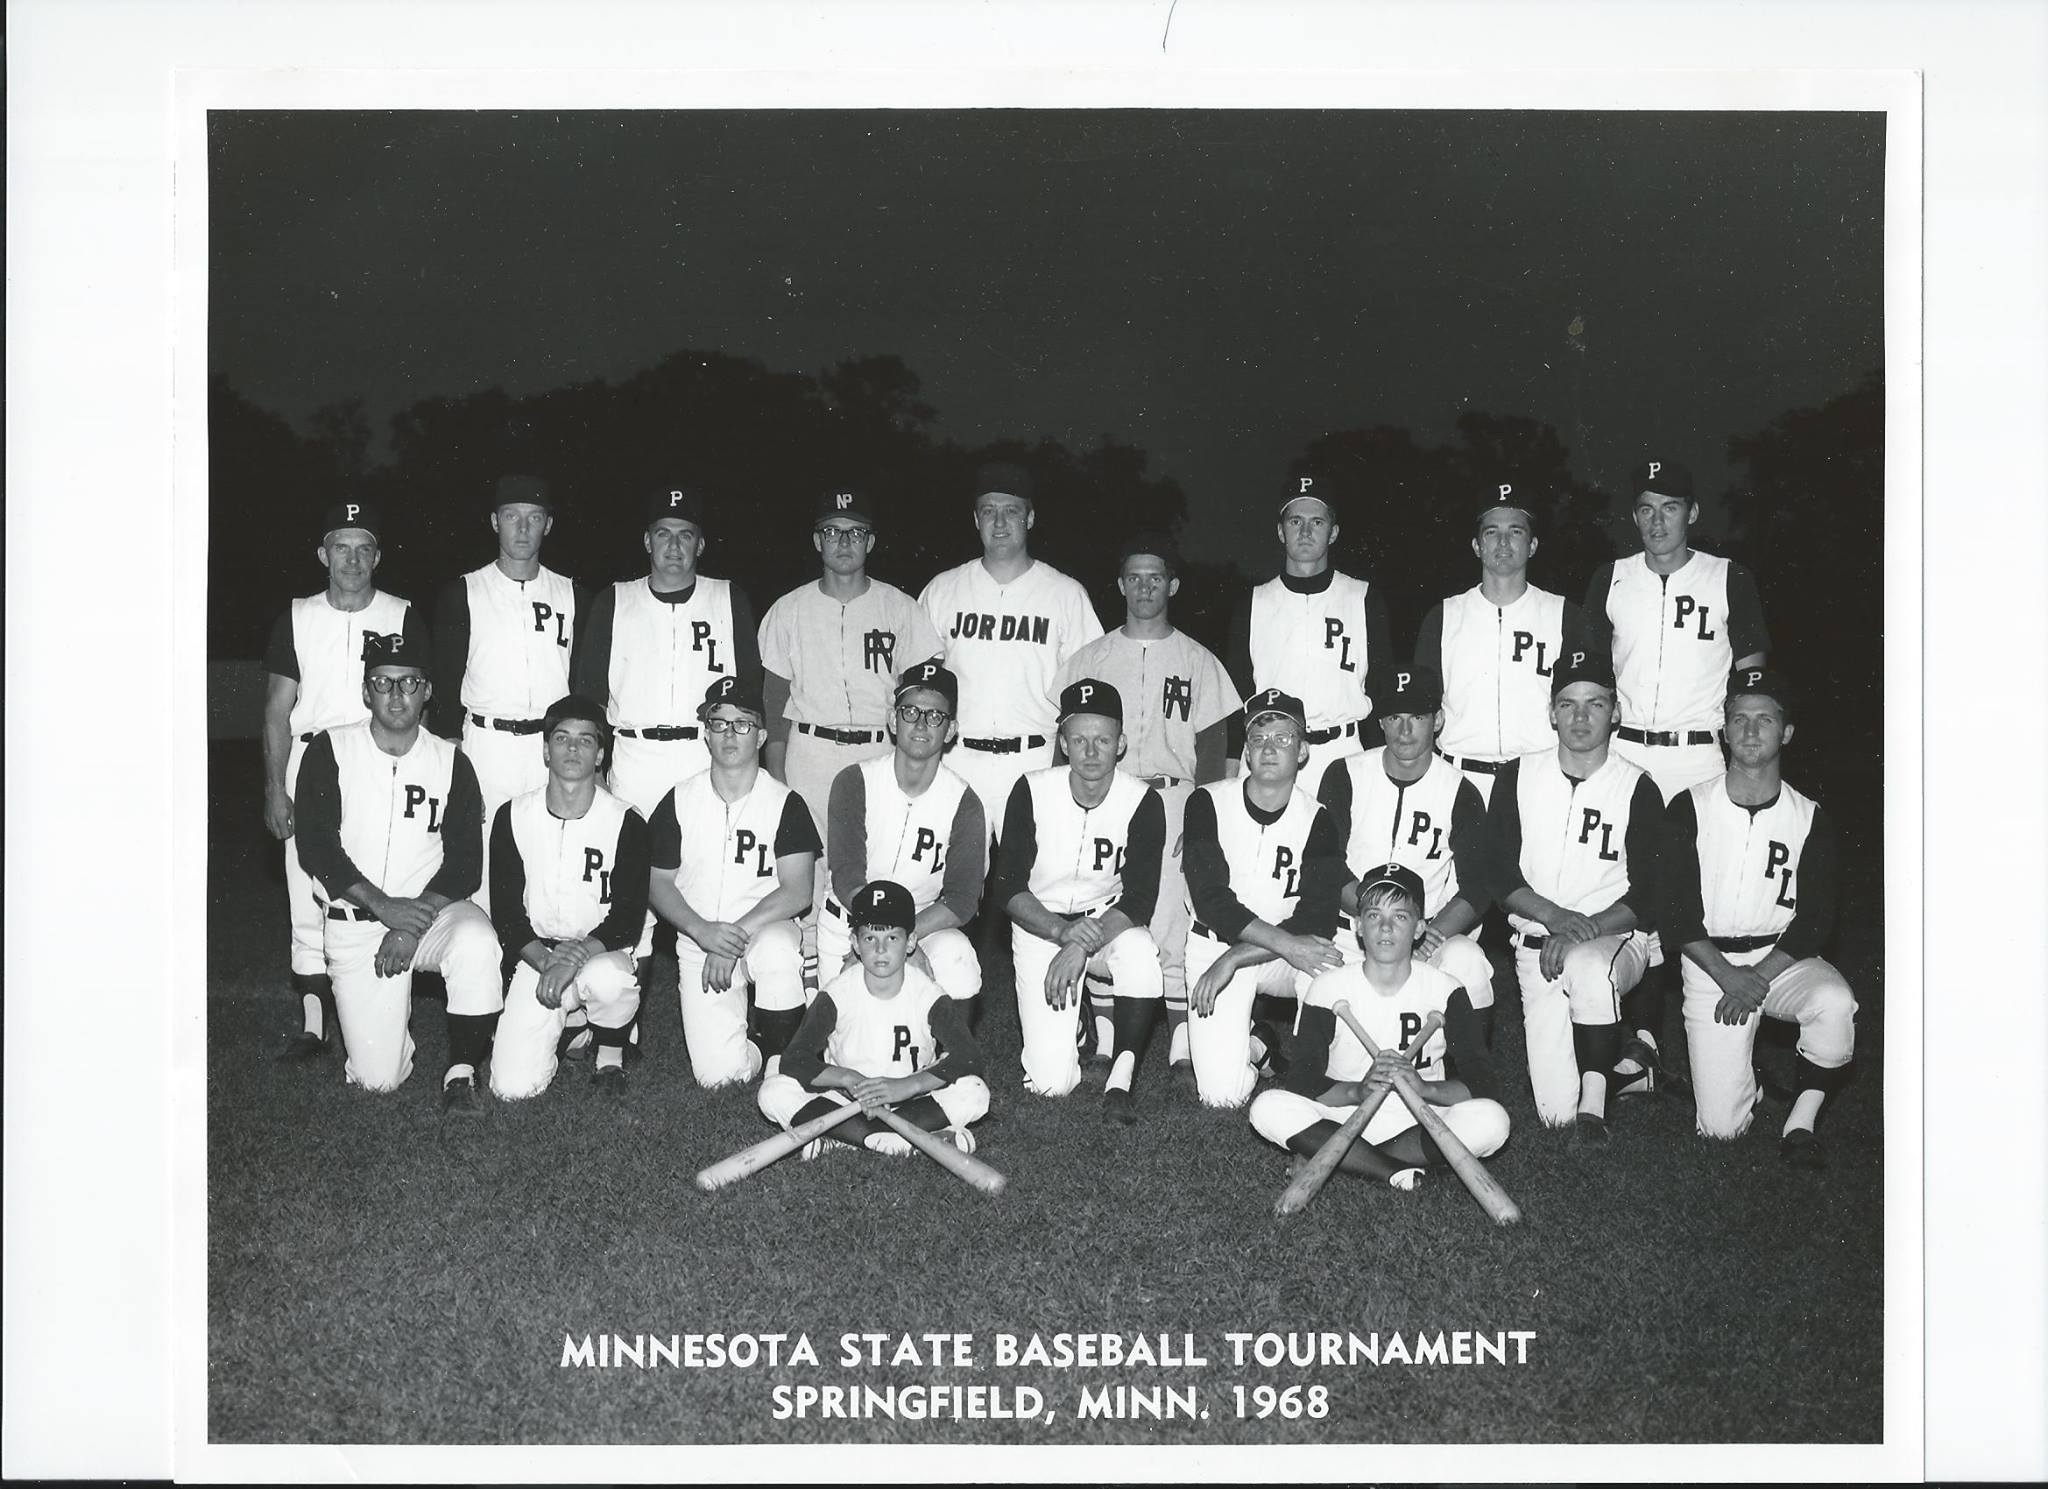 1968 PL JAYS-State Tournament Team